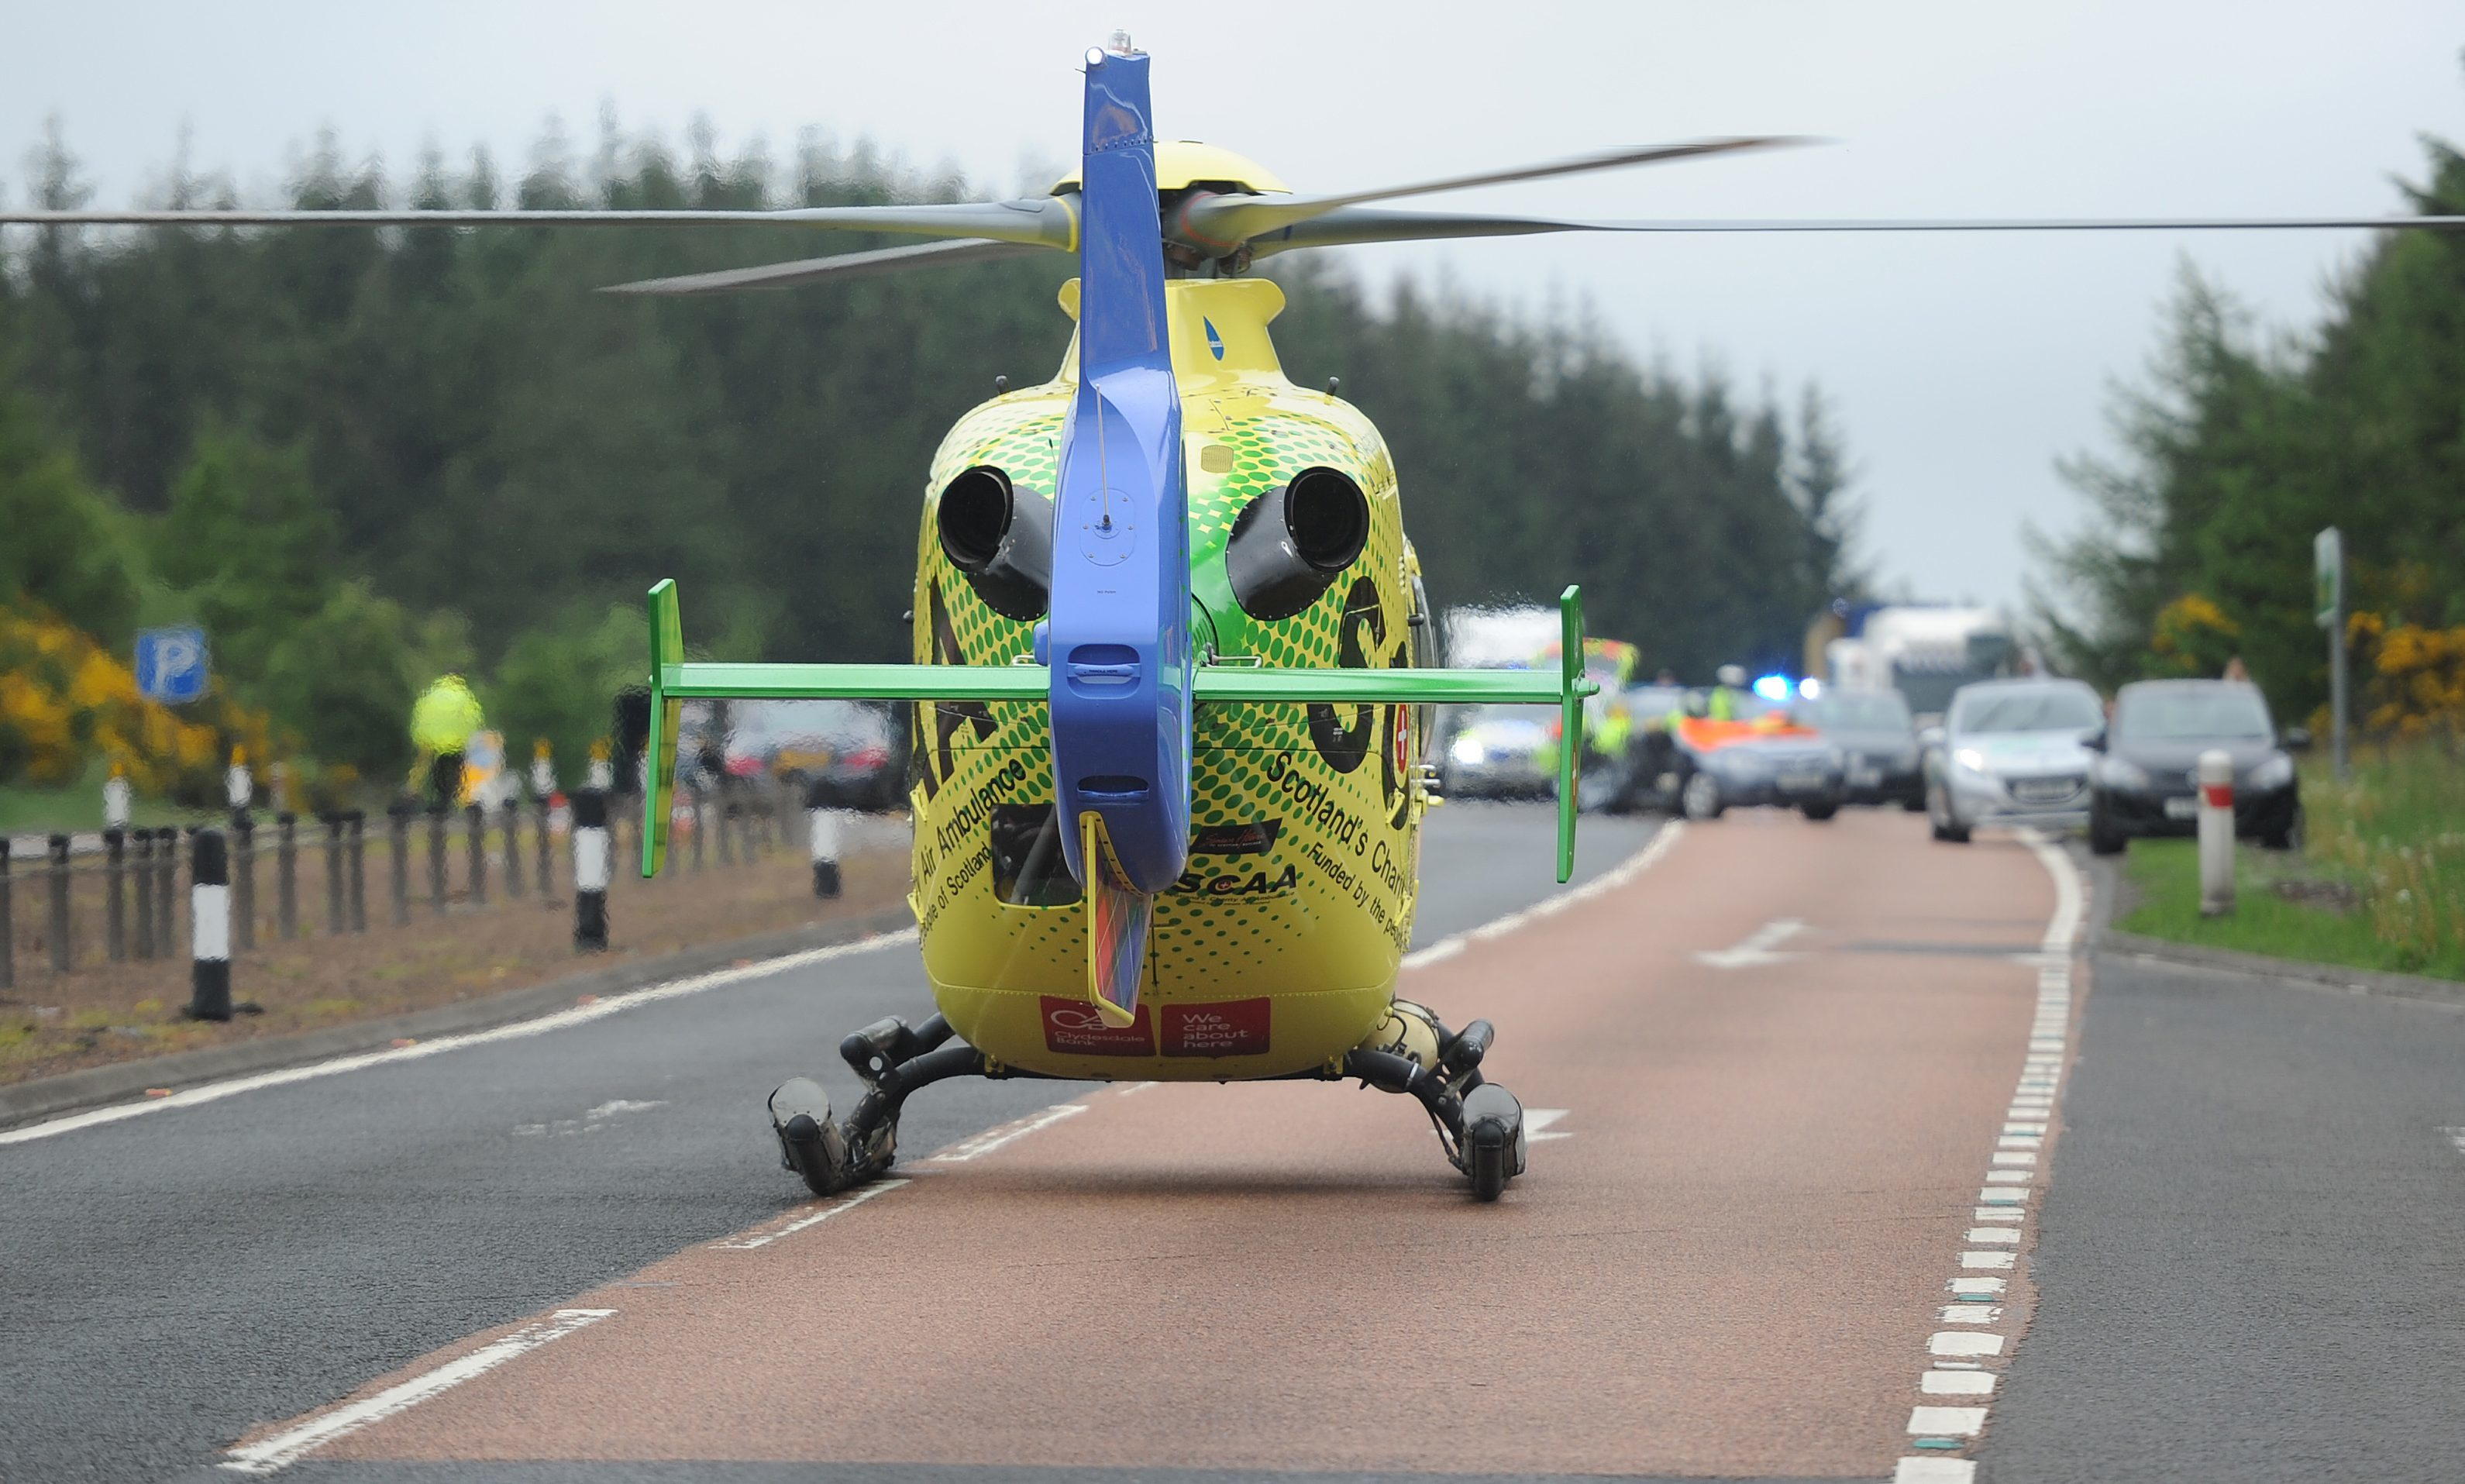 The charity air ambulance at the scene.